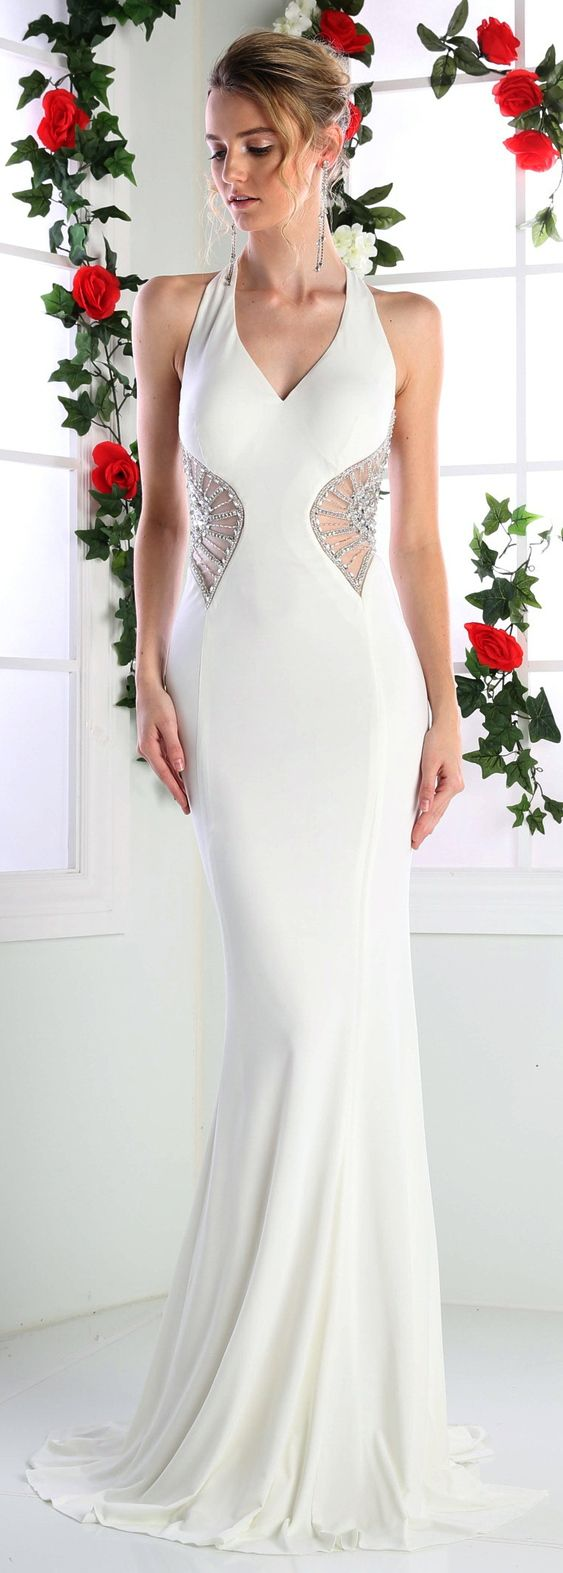 Wedding dresses under $200  White Dresses Special Occasion Dresses by CINDERELLAucBRueaddCRucBR